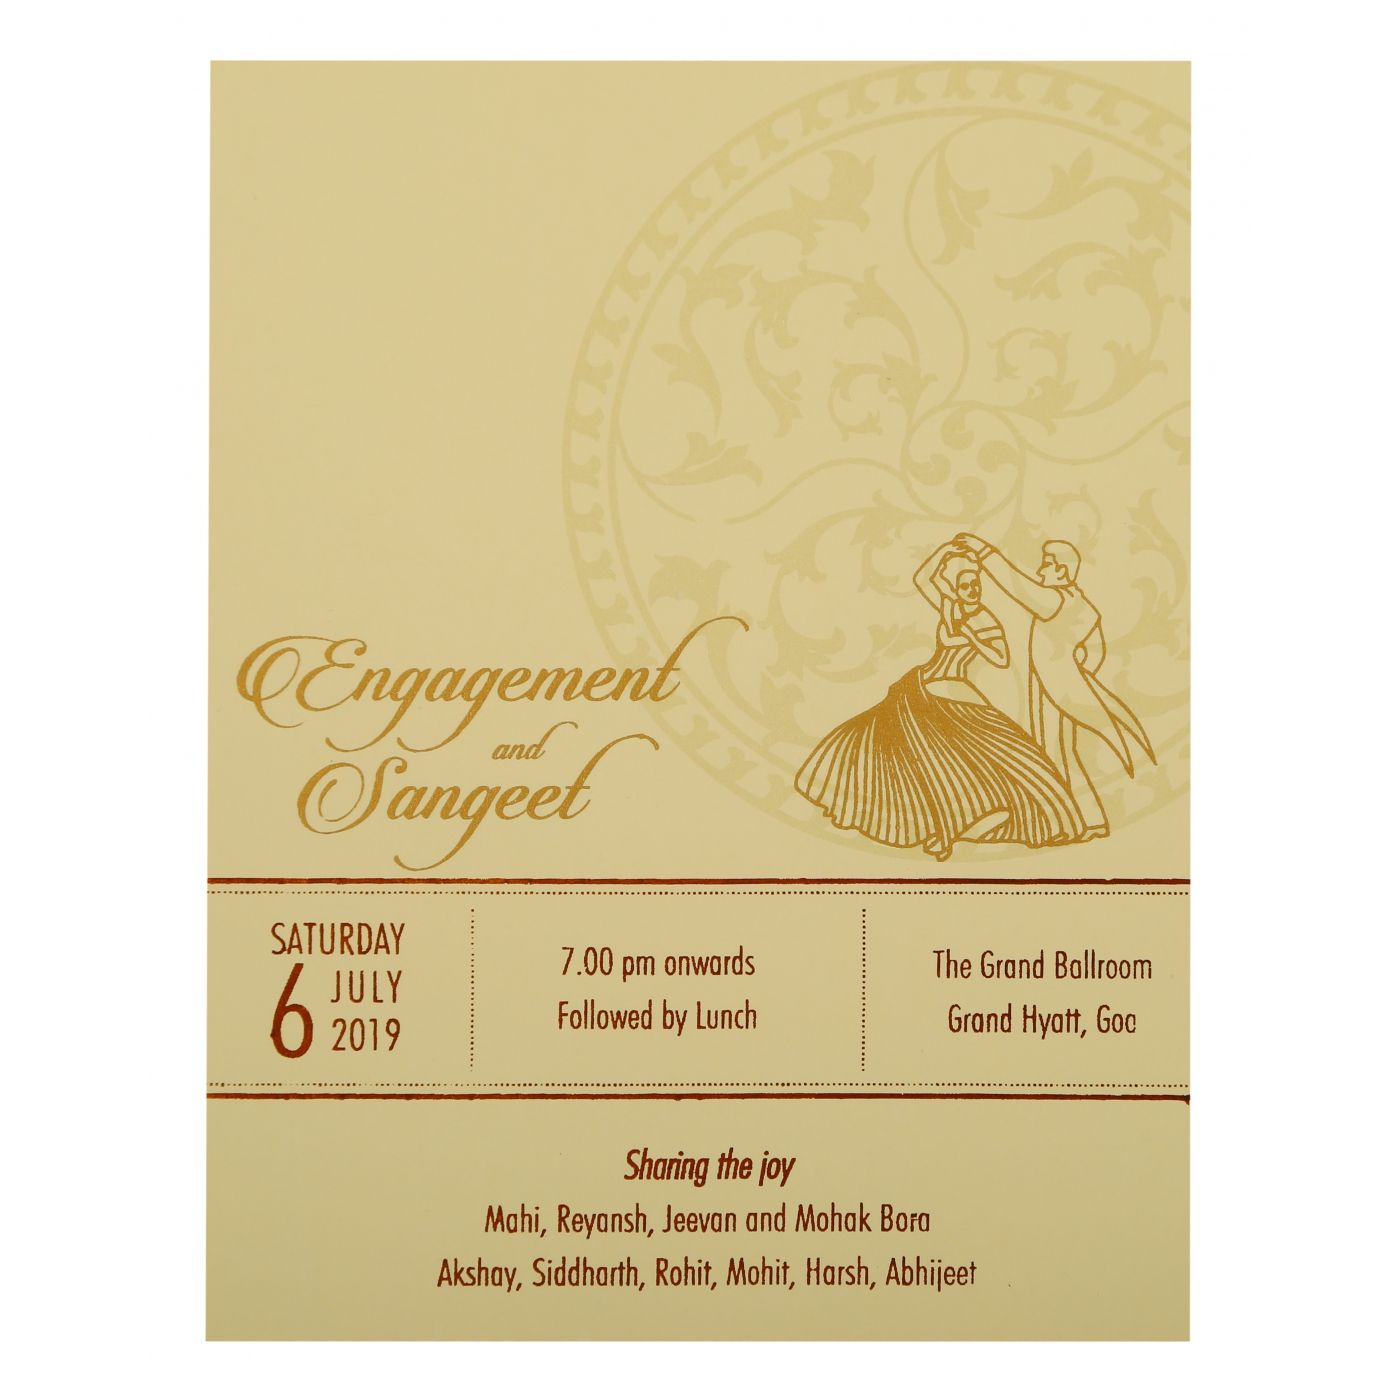 OFF-WHITE MATTE FLORAL THEMED - OFFSET PRINTED WEDDING INVITATION : CS-1932 - IndianWeddingCards